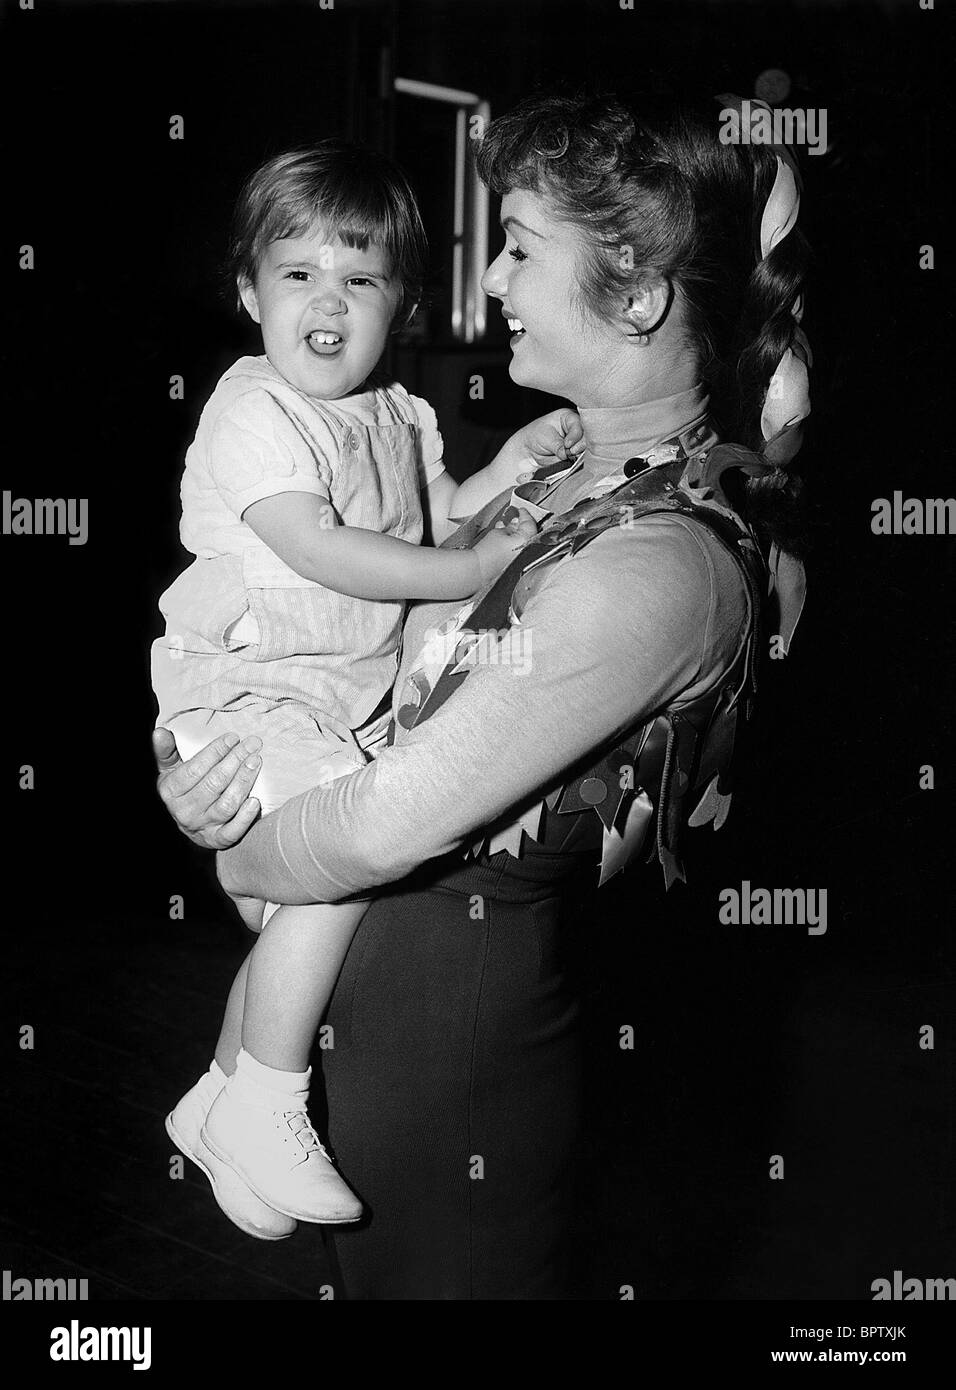 DEBBIE REYNOLDS WITH DAUGHTER CARRIE FISHER ACTRESS WITH DAUGHTER (1959) - Stock Image